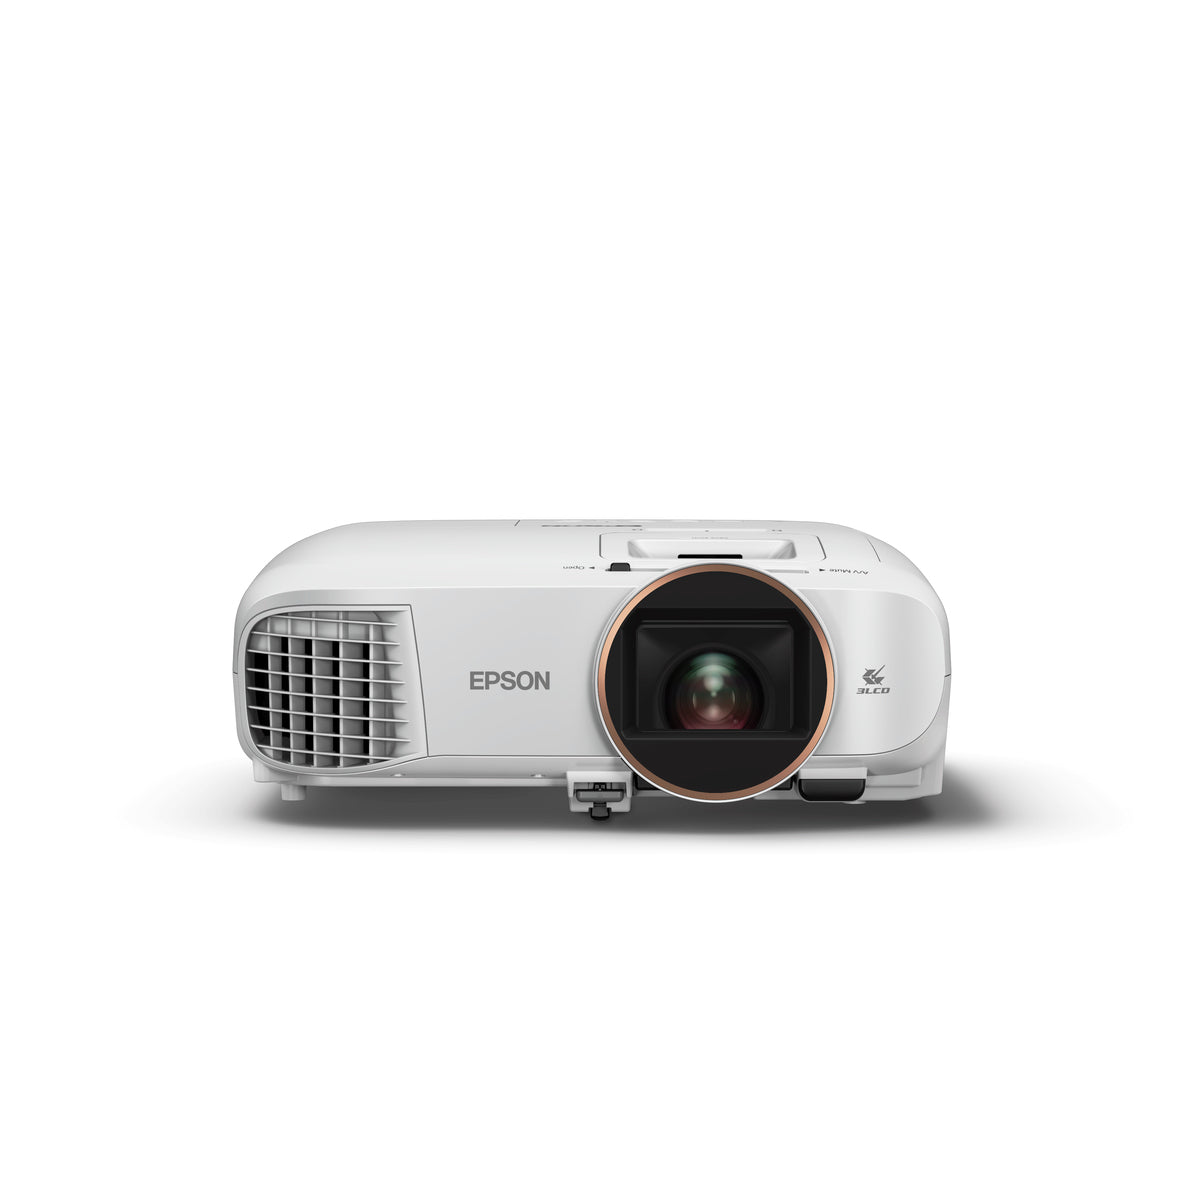 Epson EH-TW5650 (Home Theatre Projector) – AVStore in